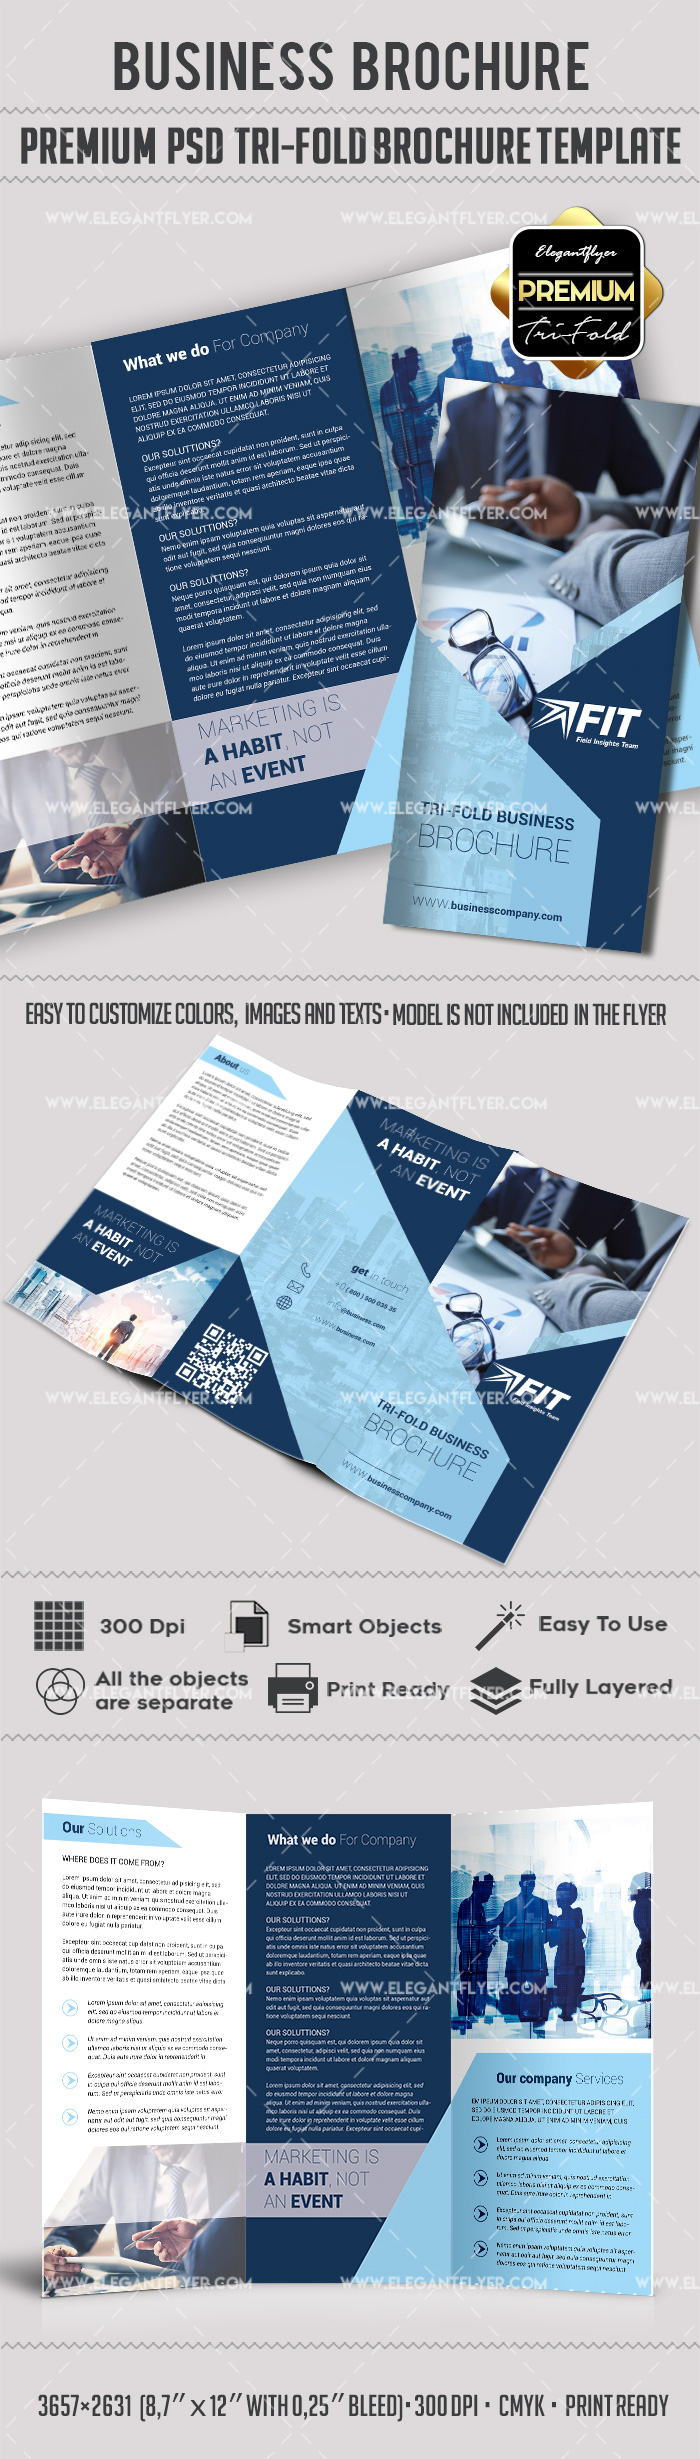 templates for a brochure - photoshop brochure template by elegantflyer